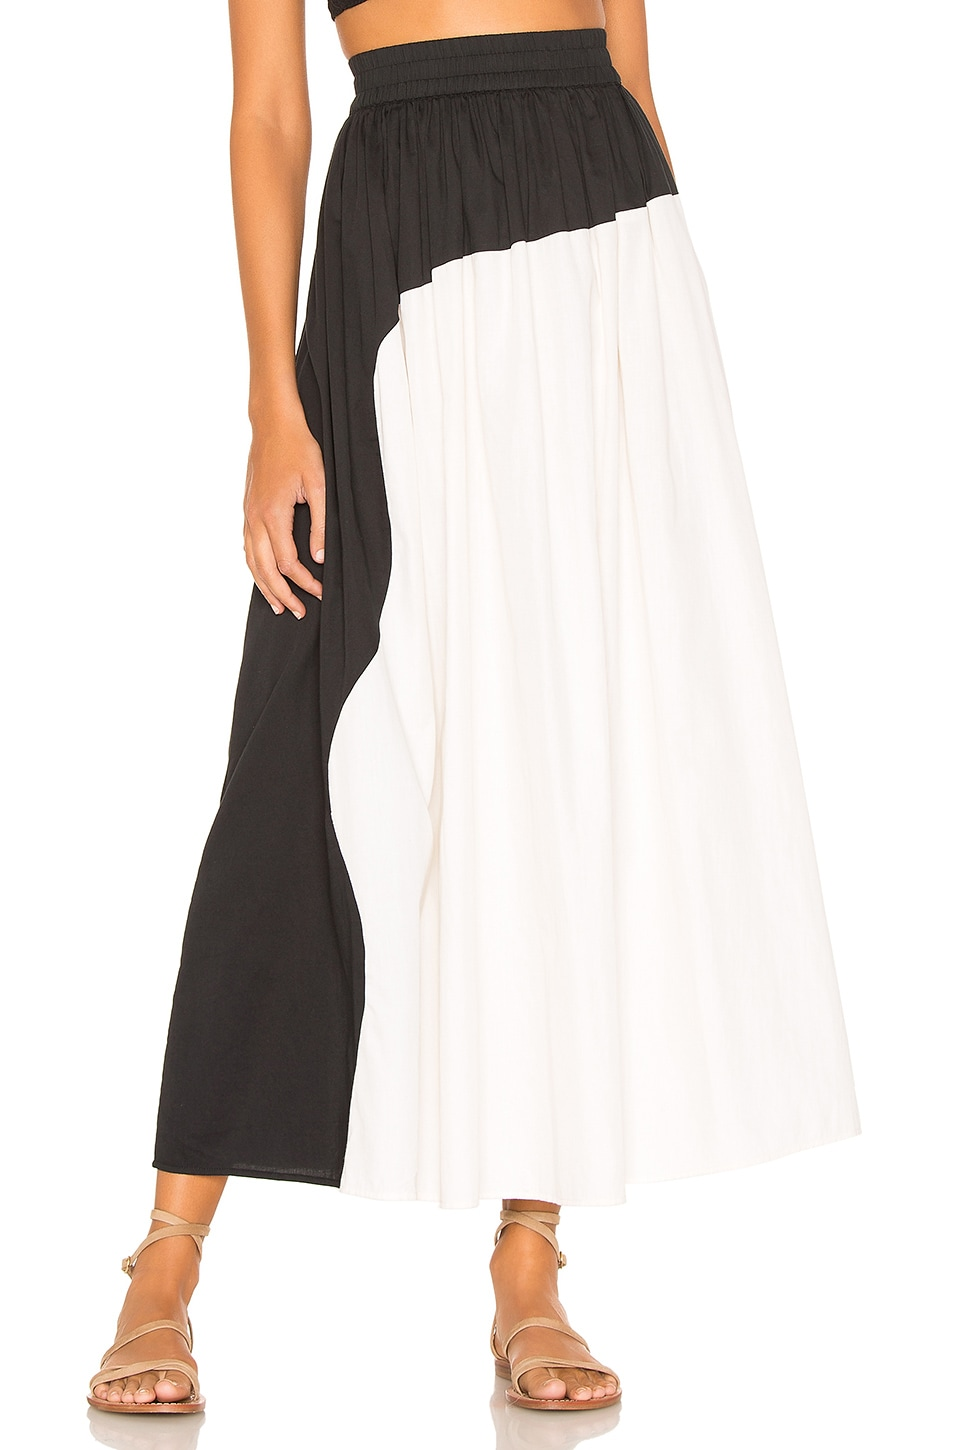 Mara Hoffman Ari Skirt in Black Cream